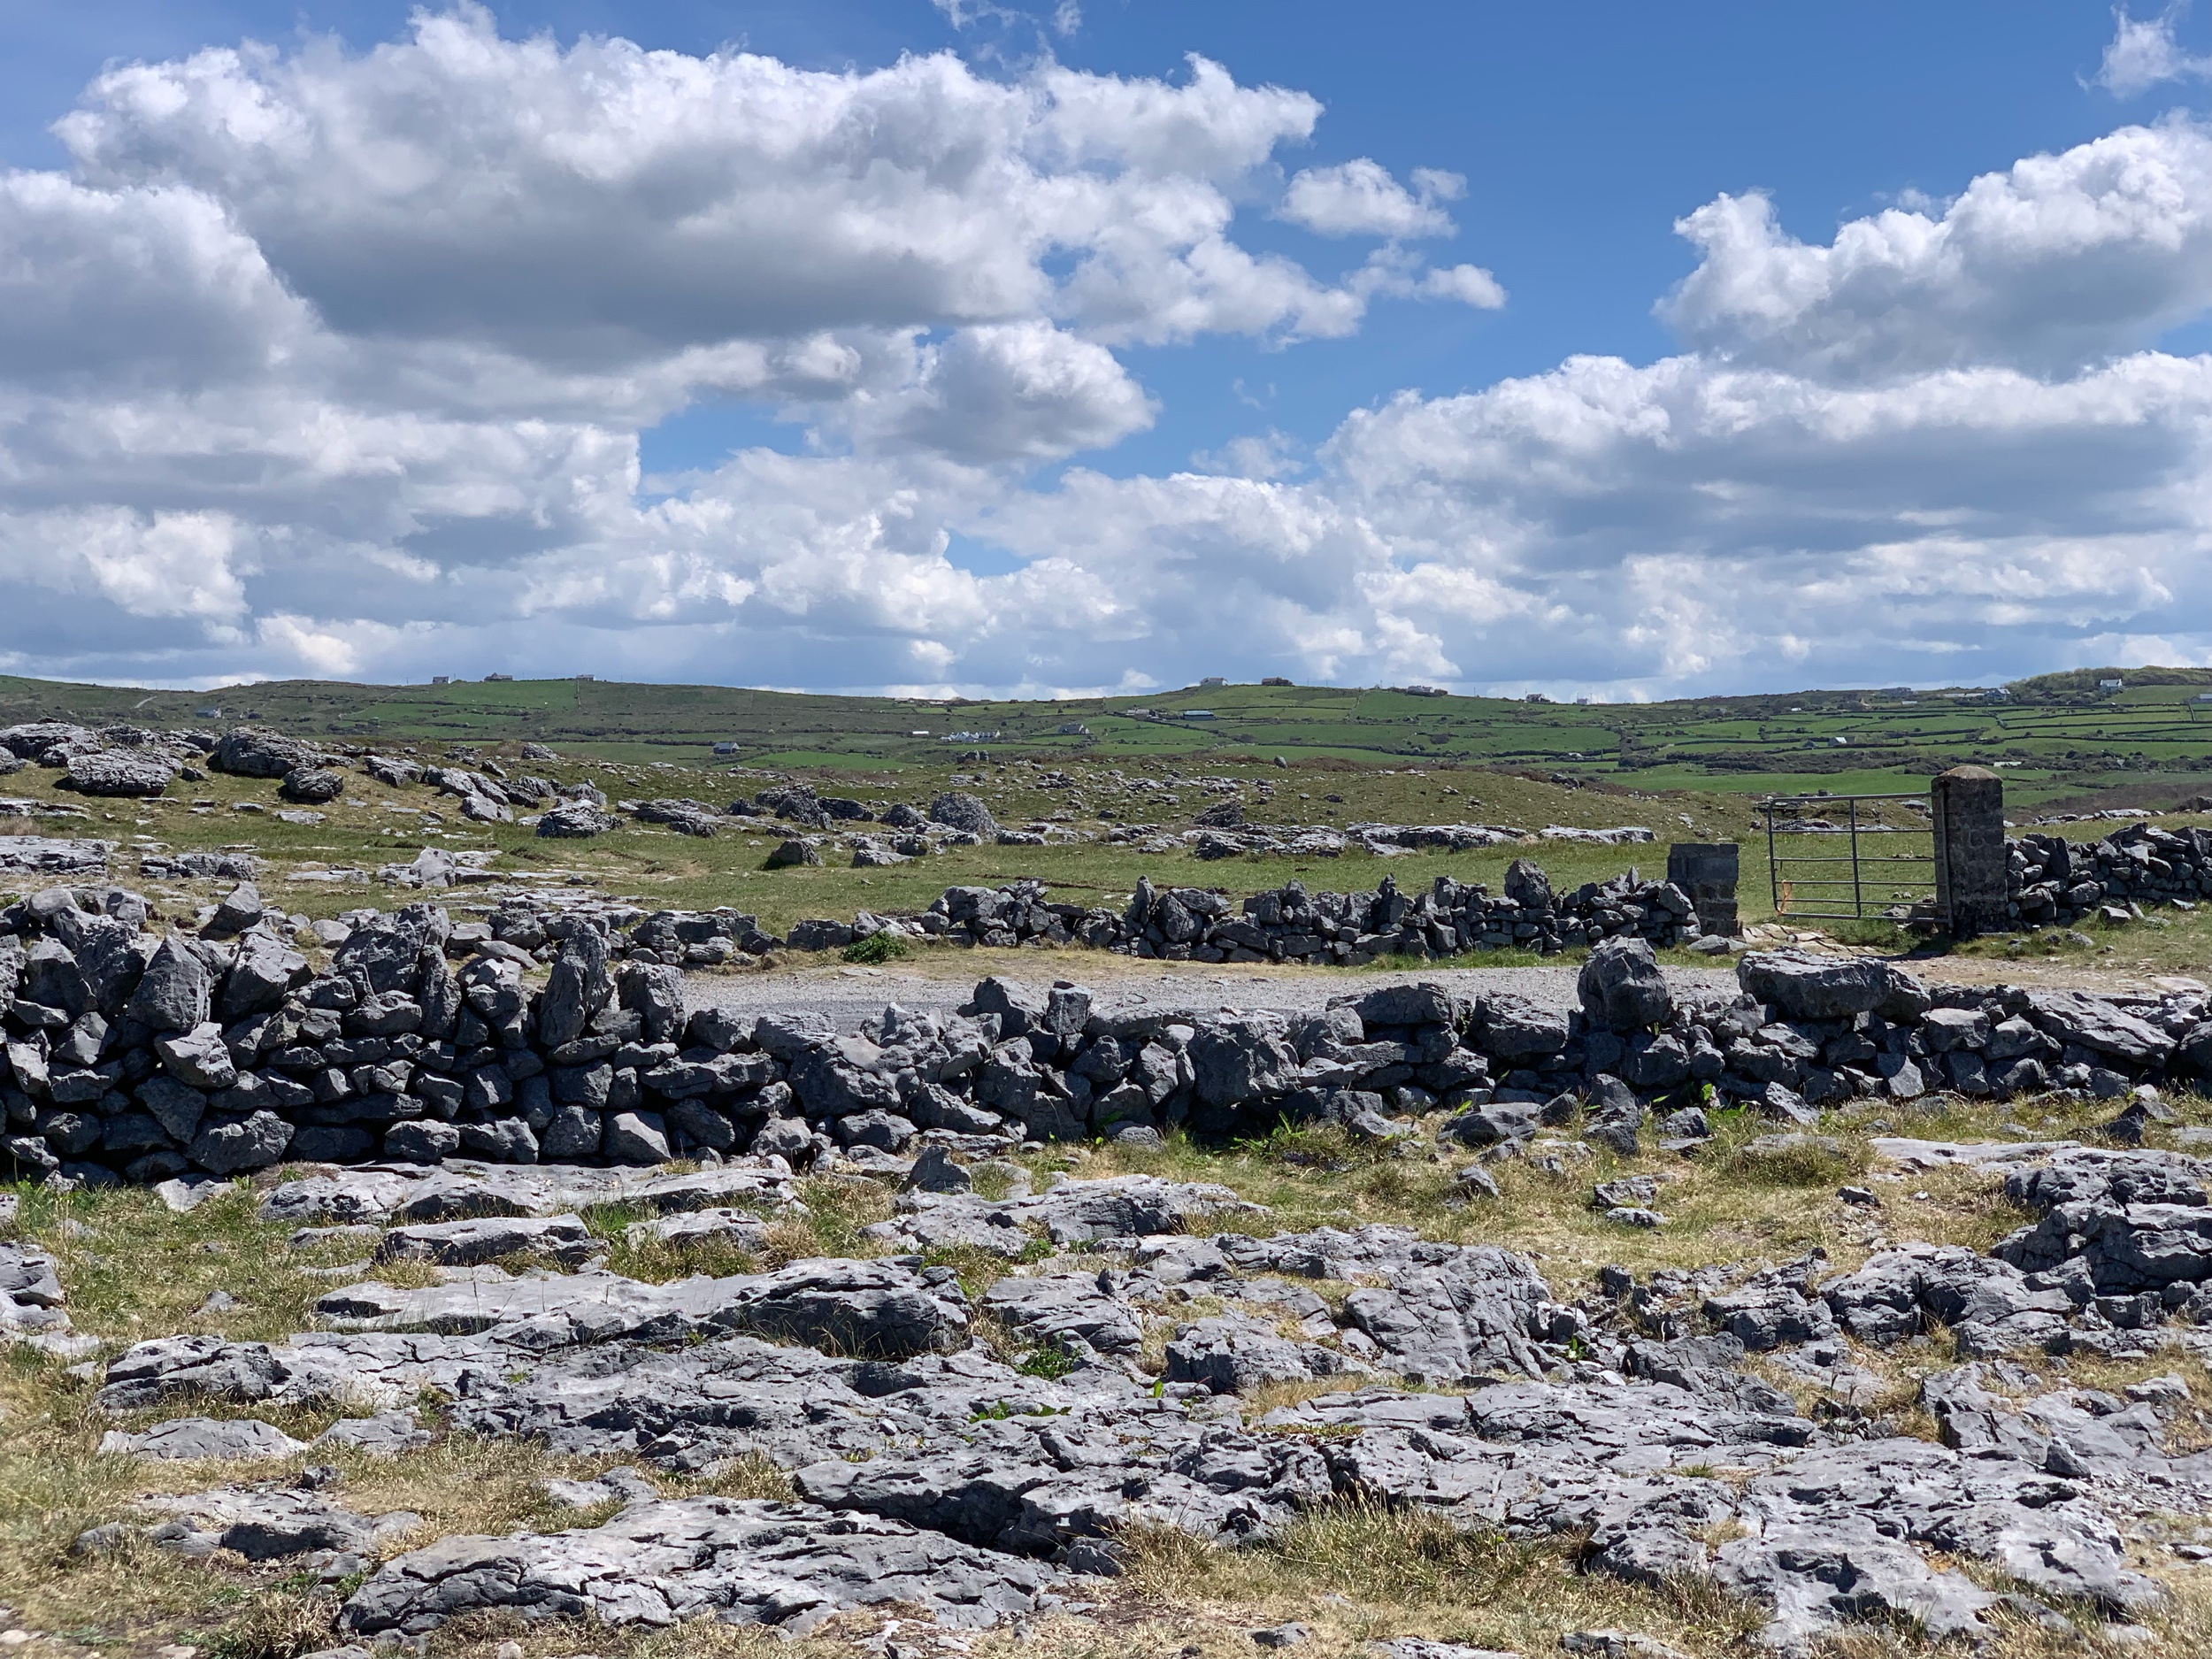 May 25, 2019 - Burren National Park, Corofin, County Clare, Ireland. No edits.